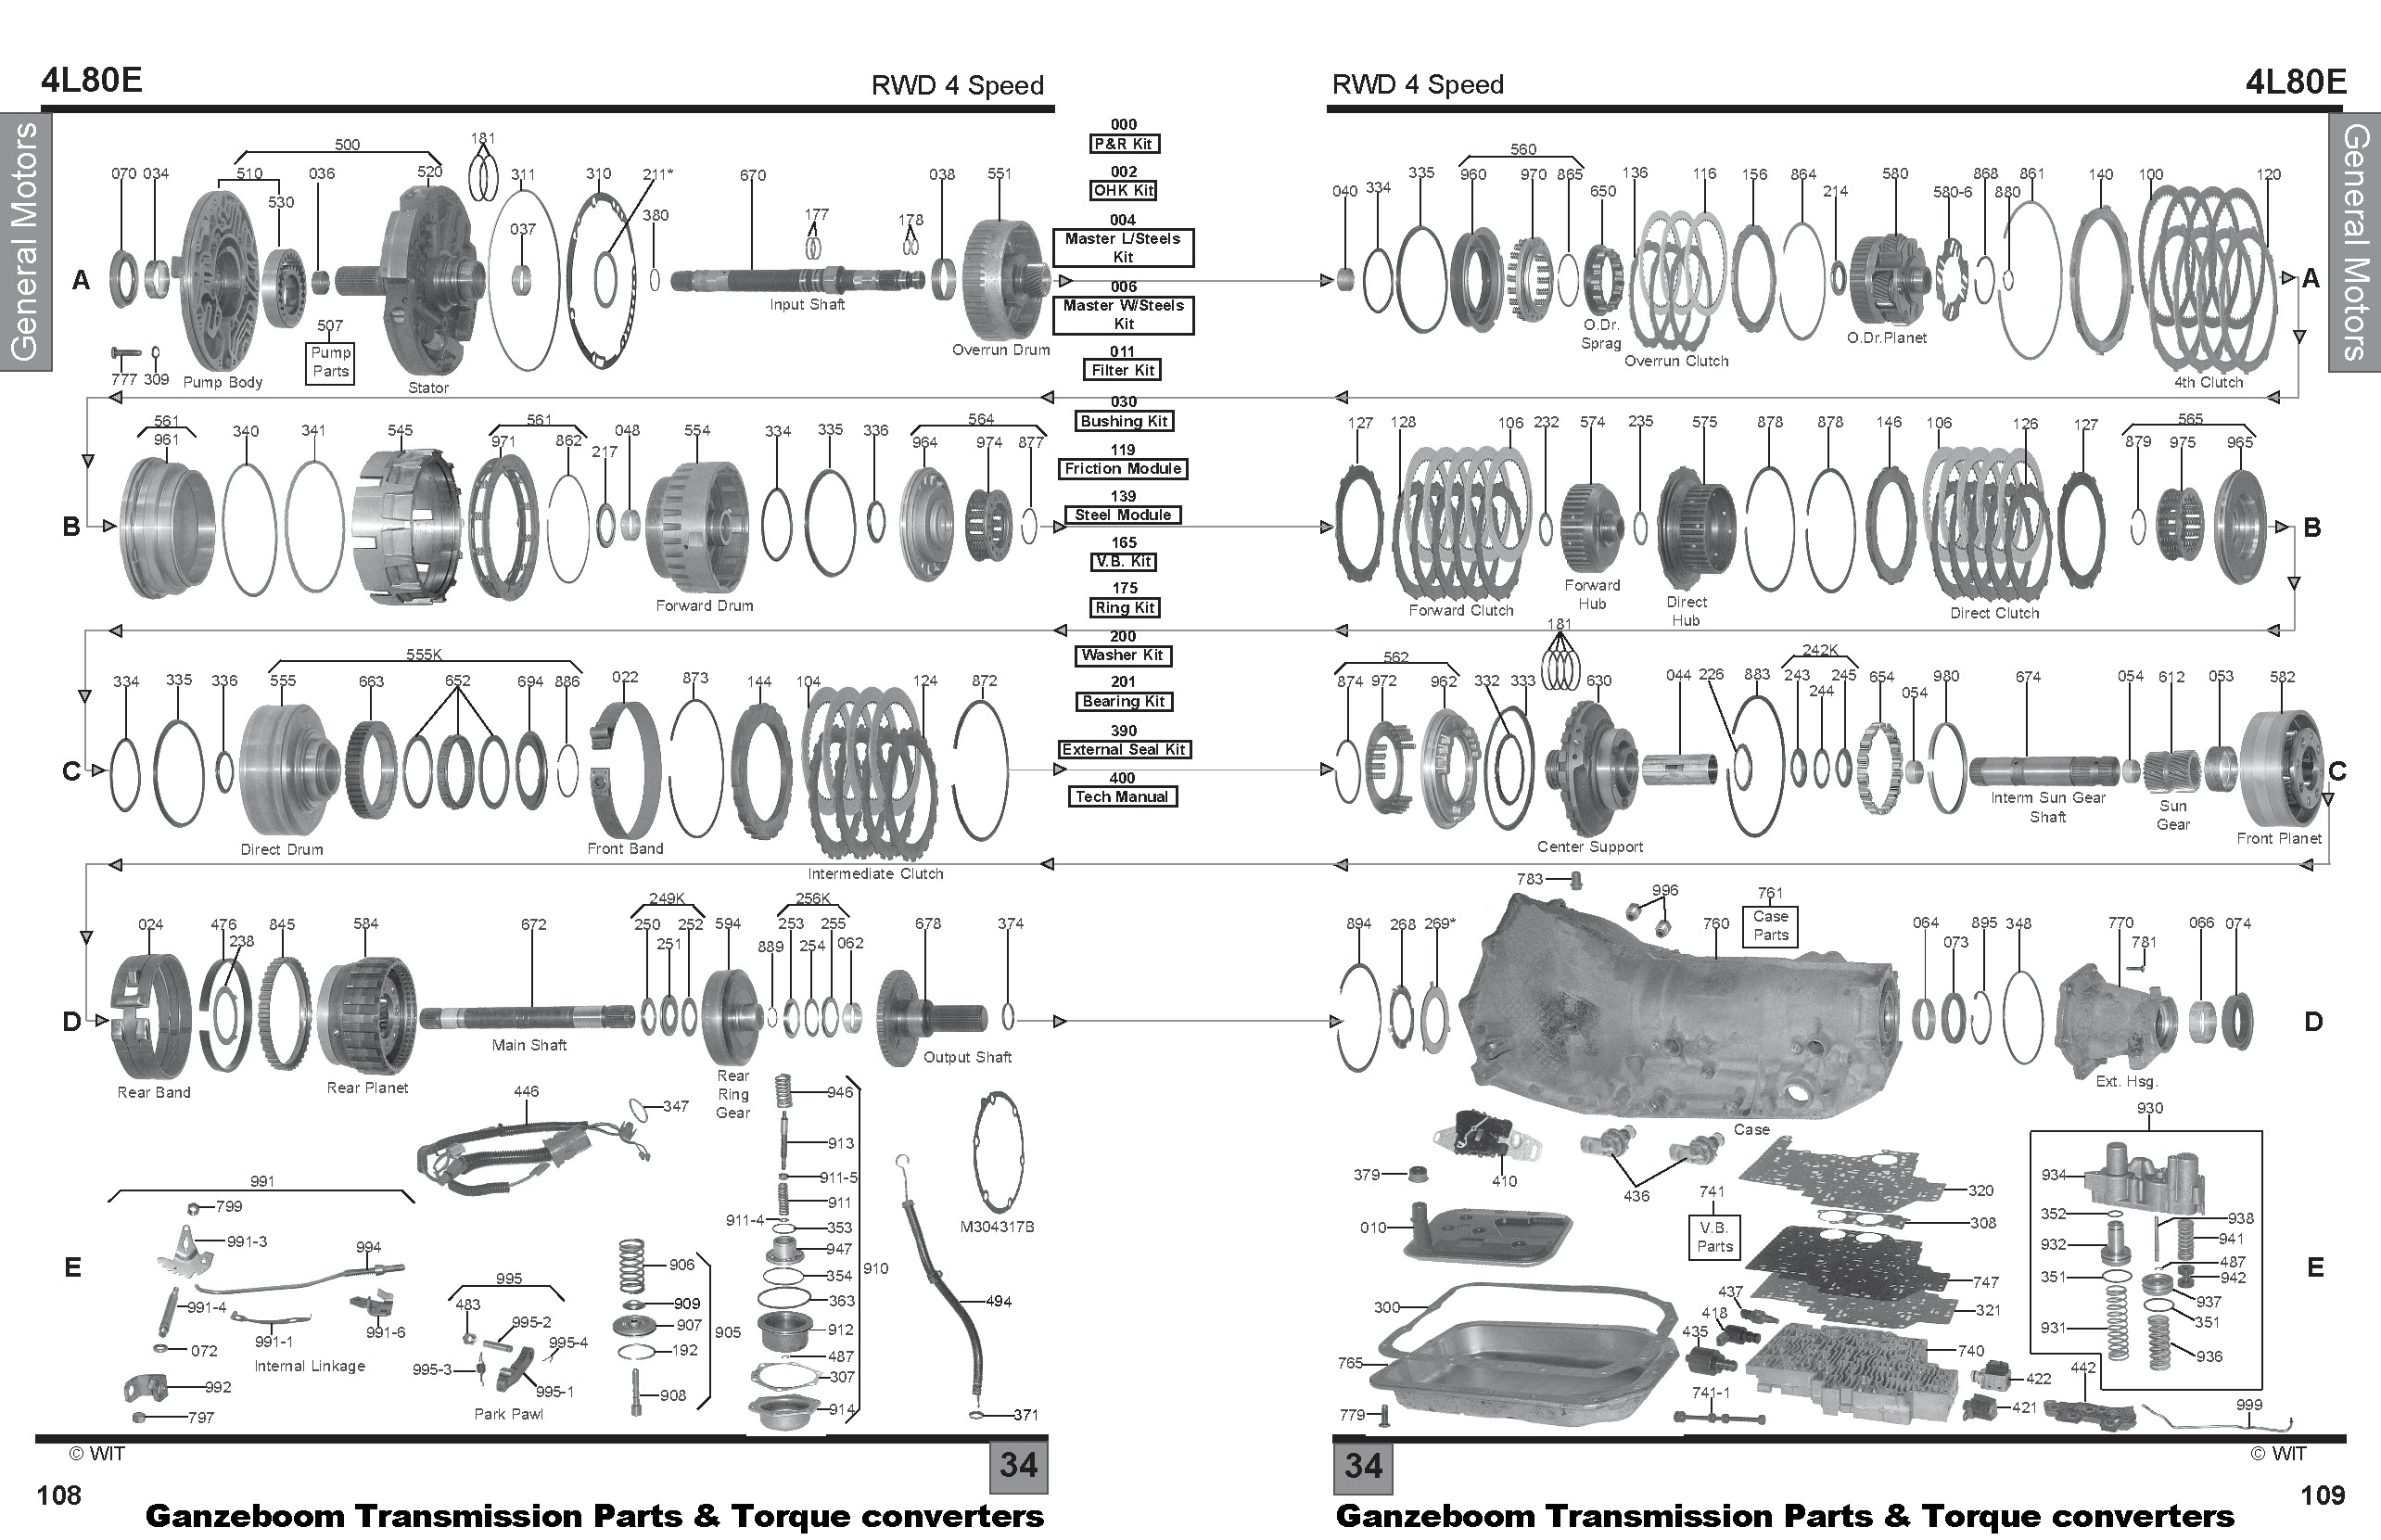 gm 350 transmission schematic with 4t60e Transmission Diagram Breakdown on 4l60e Transmission Schematics furthermore P4 in addition 1tu48 F 150 2003 4wd Auto Tranny One further Bw T10 also Transmission Line Drawings.